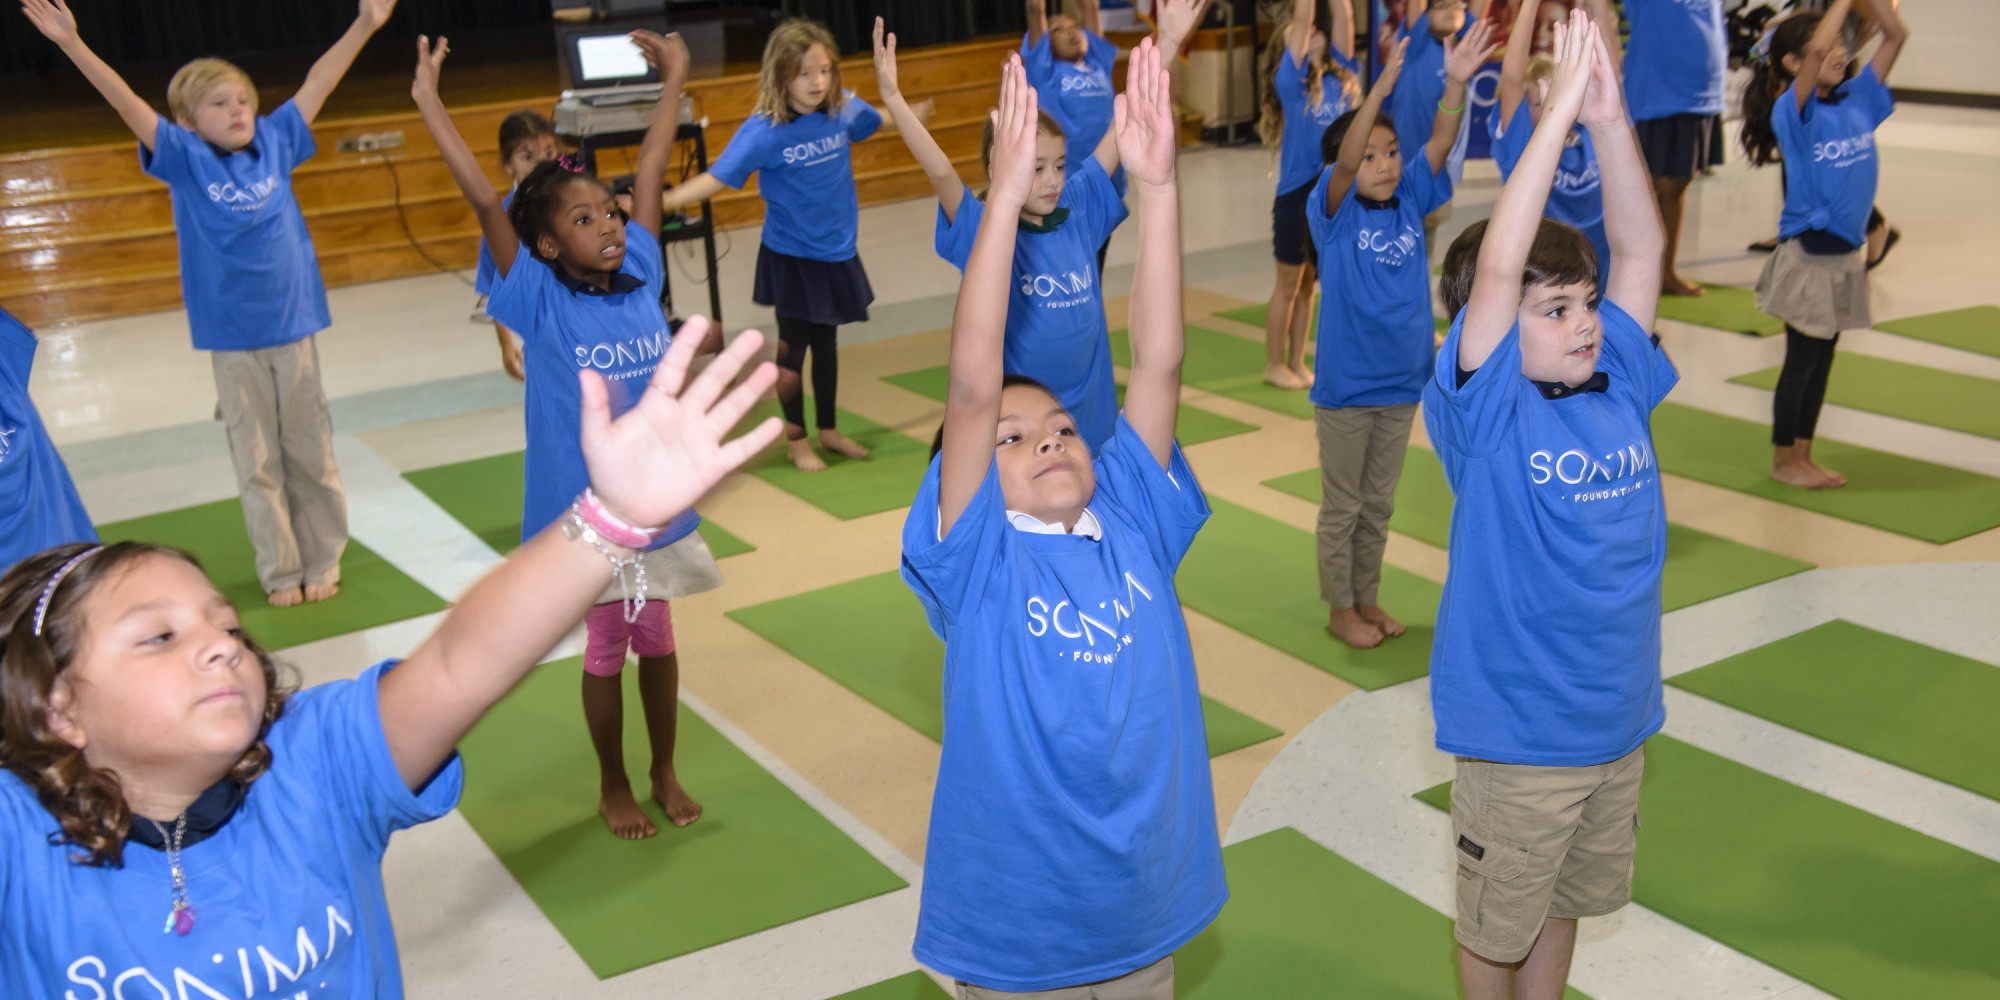 How Yoga Could Change The Lives Of Students In One Low-Income Community